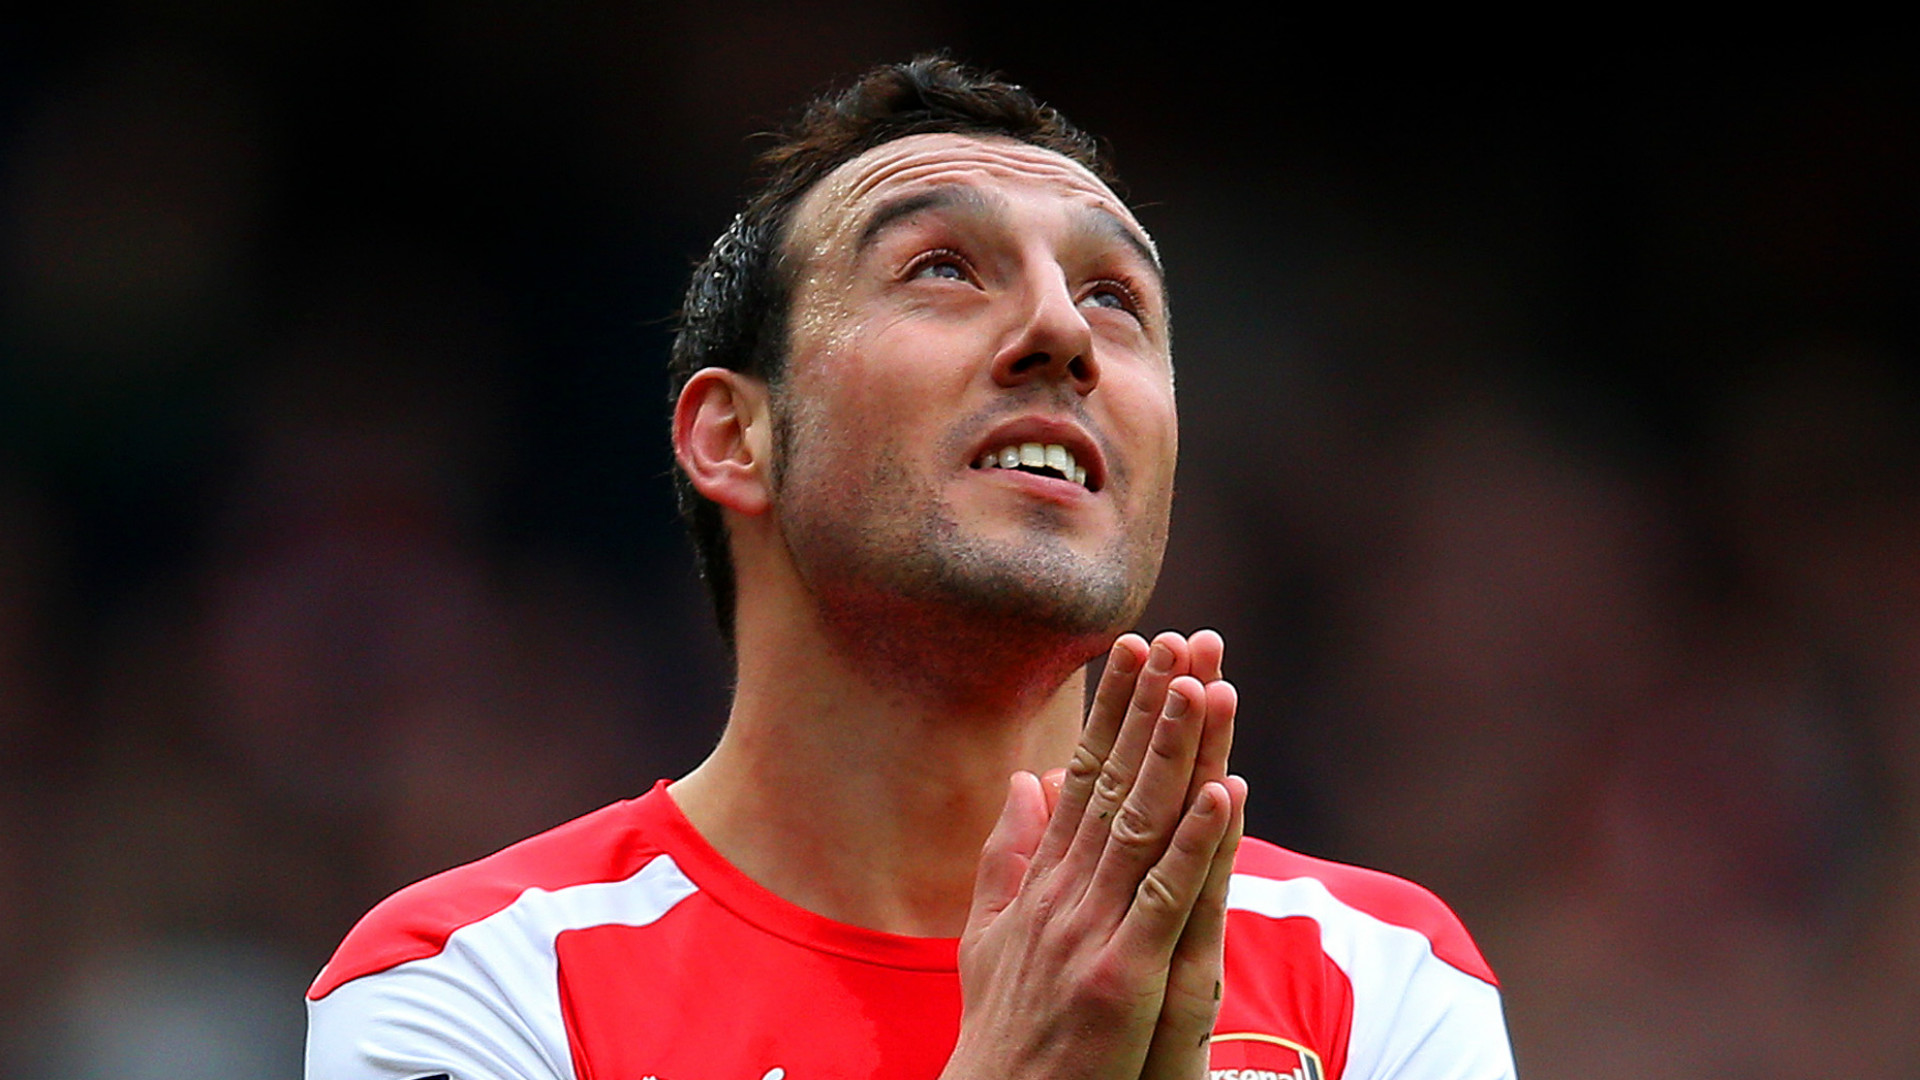 Cazorla hoping to make Arsenal return after missing the chance to say 'a proper goodbye'